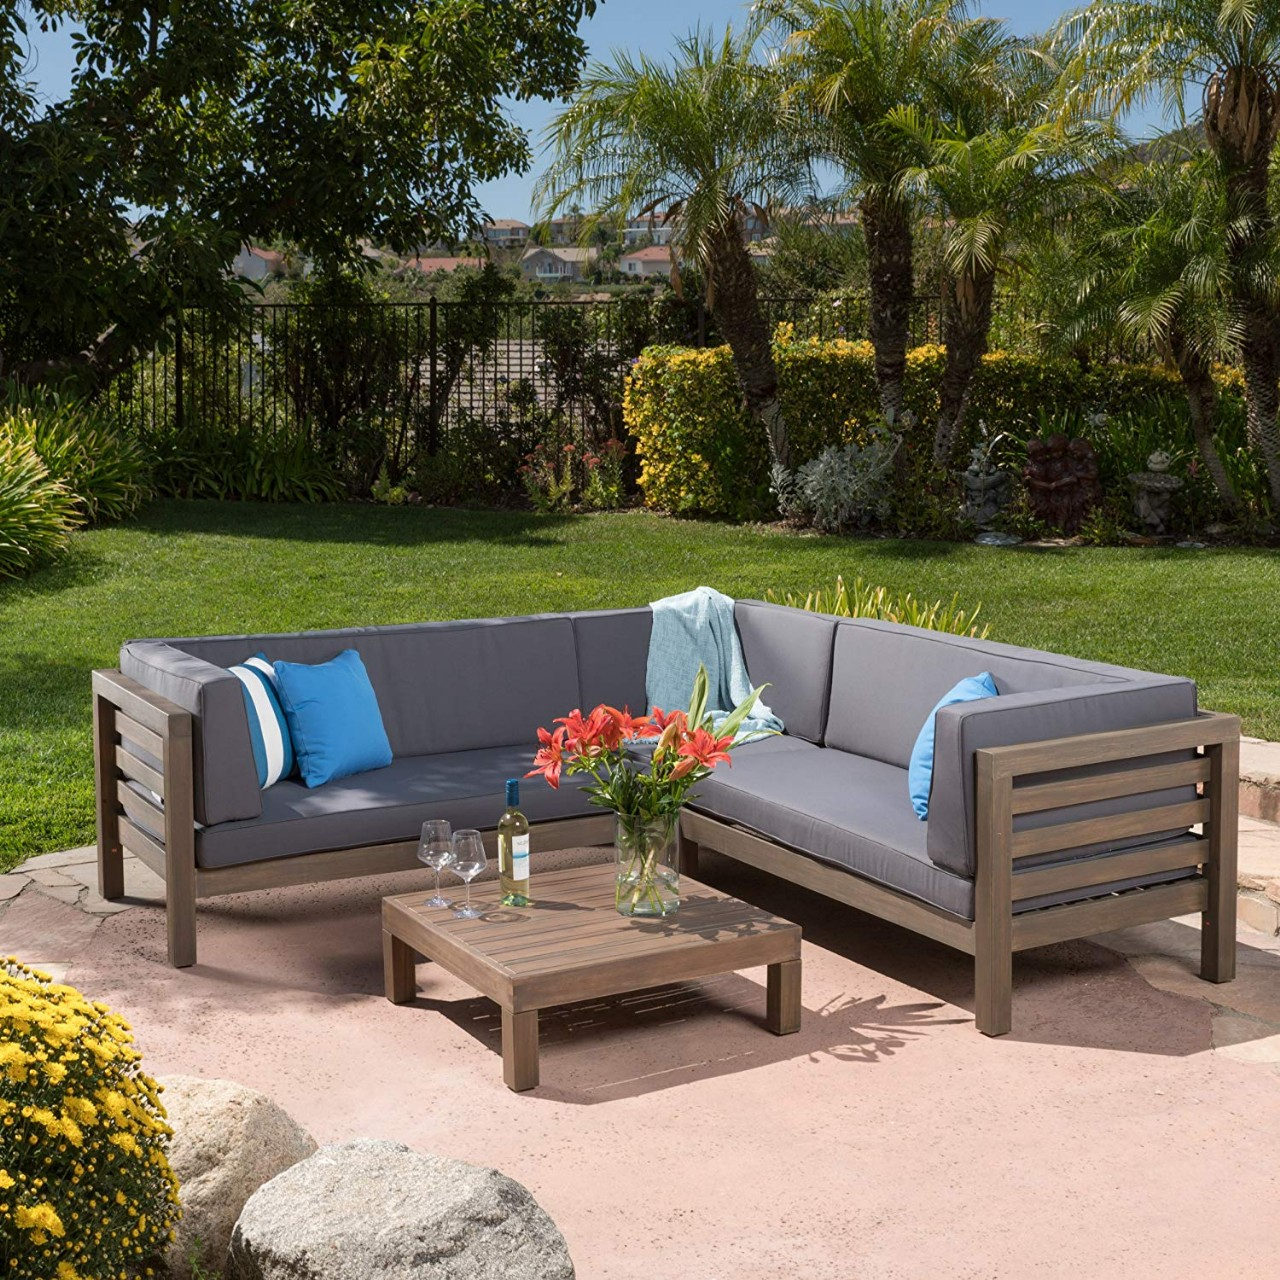 Outdoor Patio Furniture Set Cushioned Pe Rattan Sectional With Regard To Outdoor Sofa Chairs (View 2 of 15)